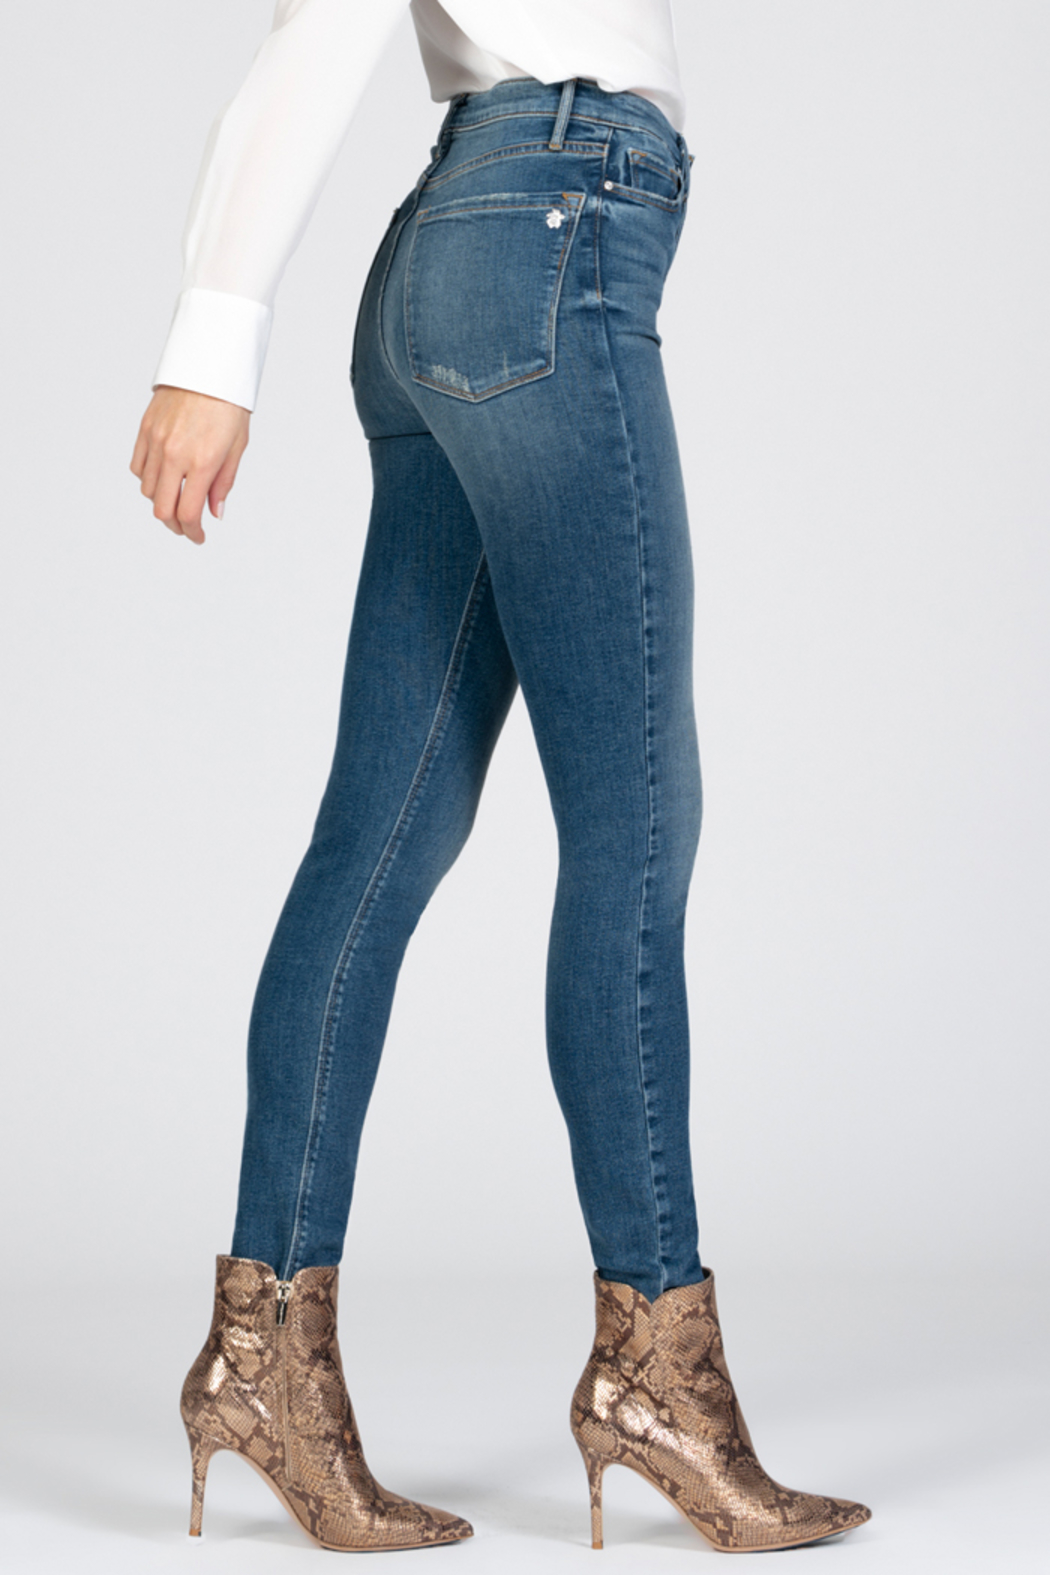 Black Orchid Denim Black Orchid Christie Buttonfly High Rise Skinny Jean - Side Cropped Image